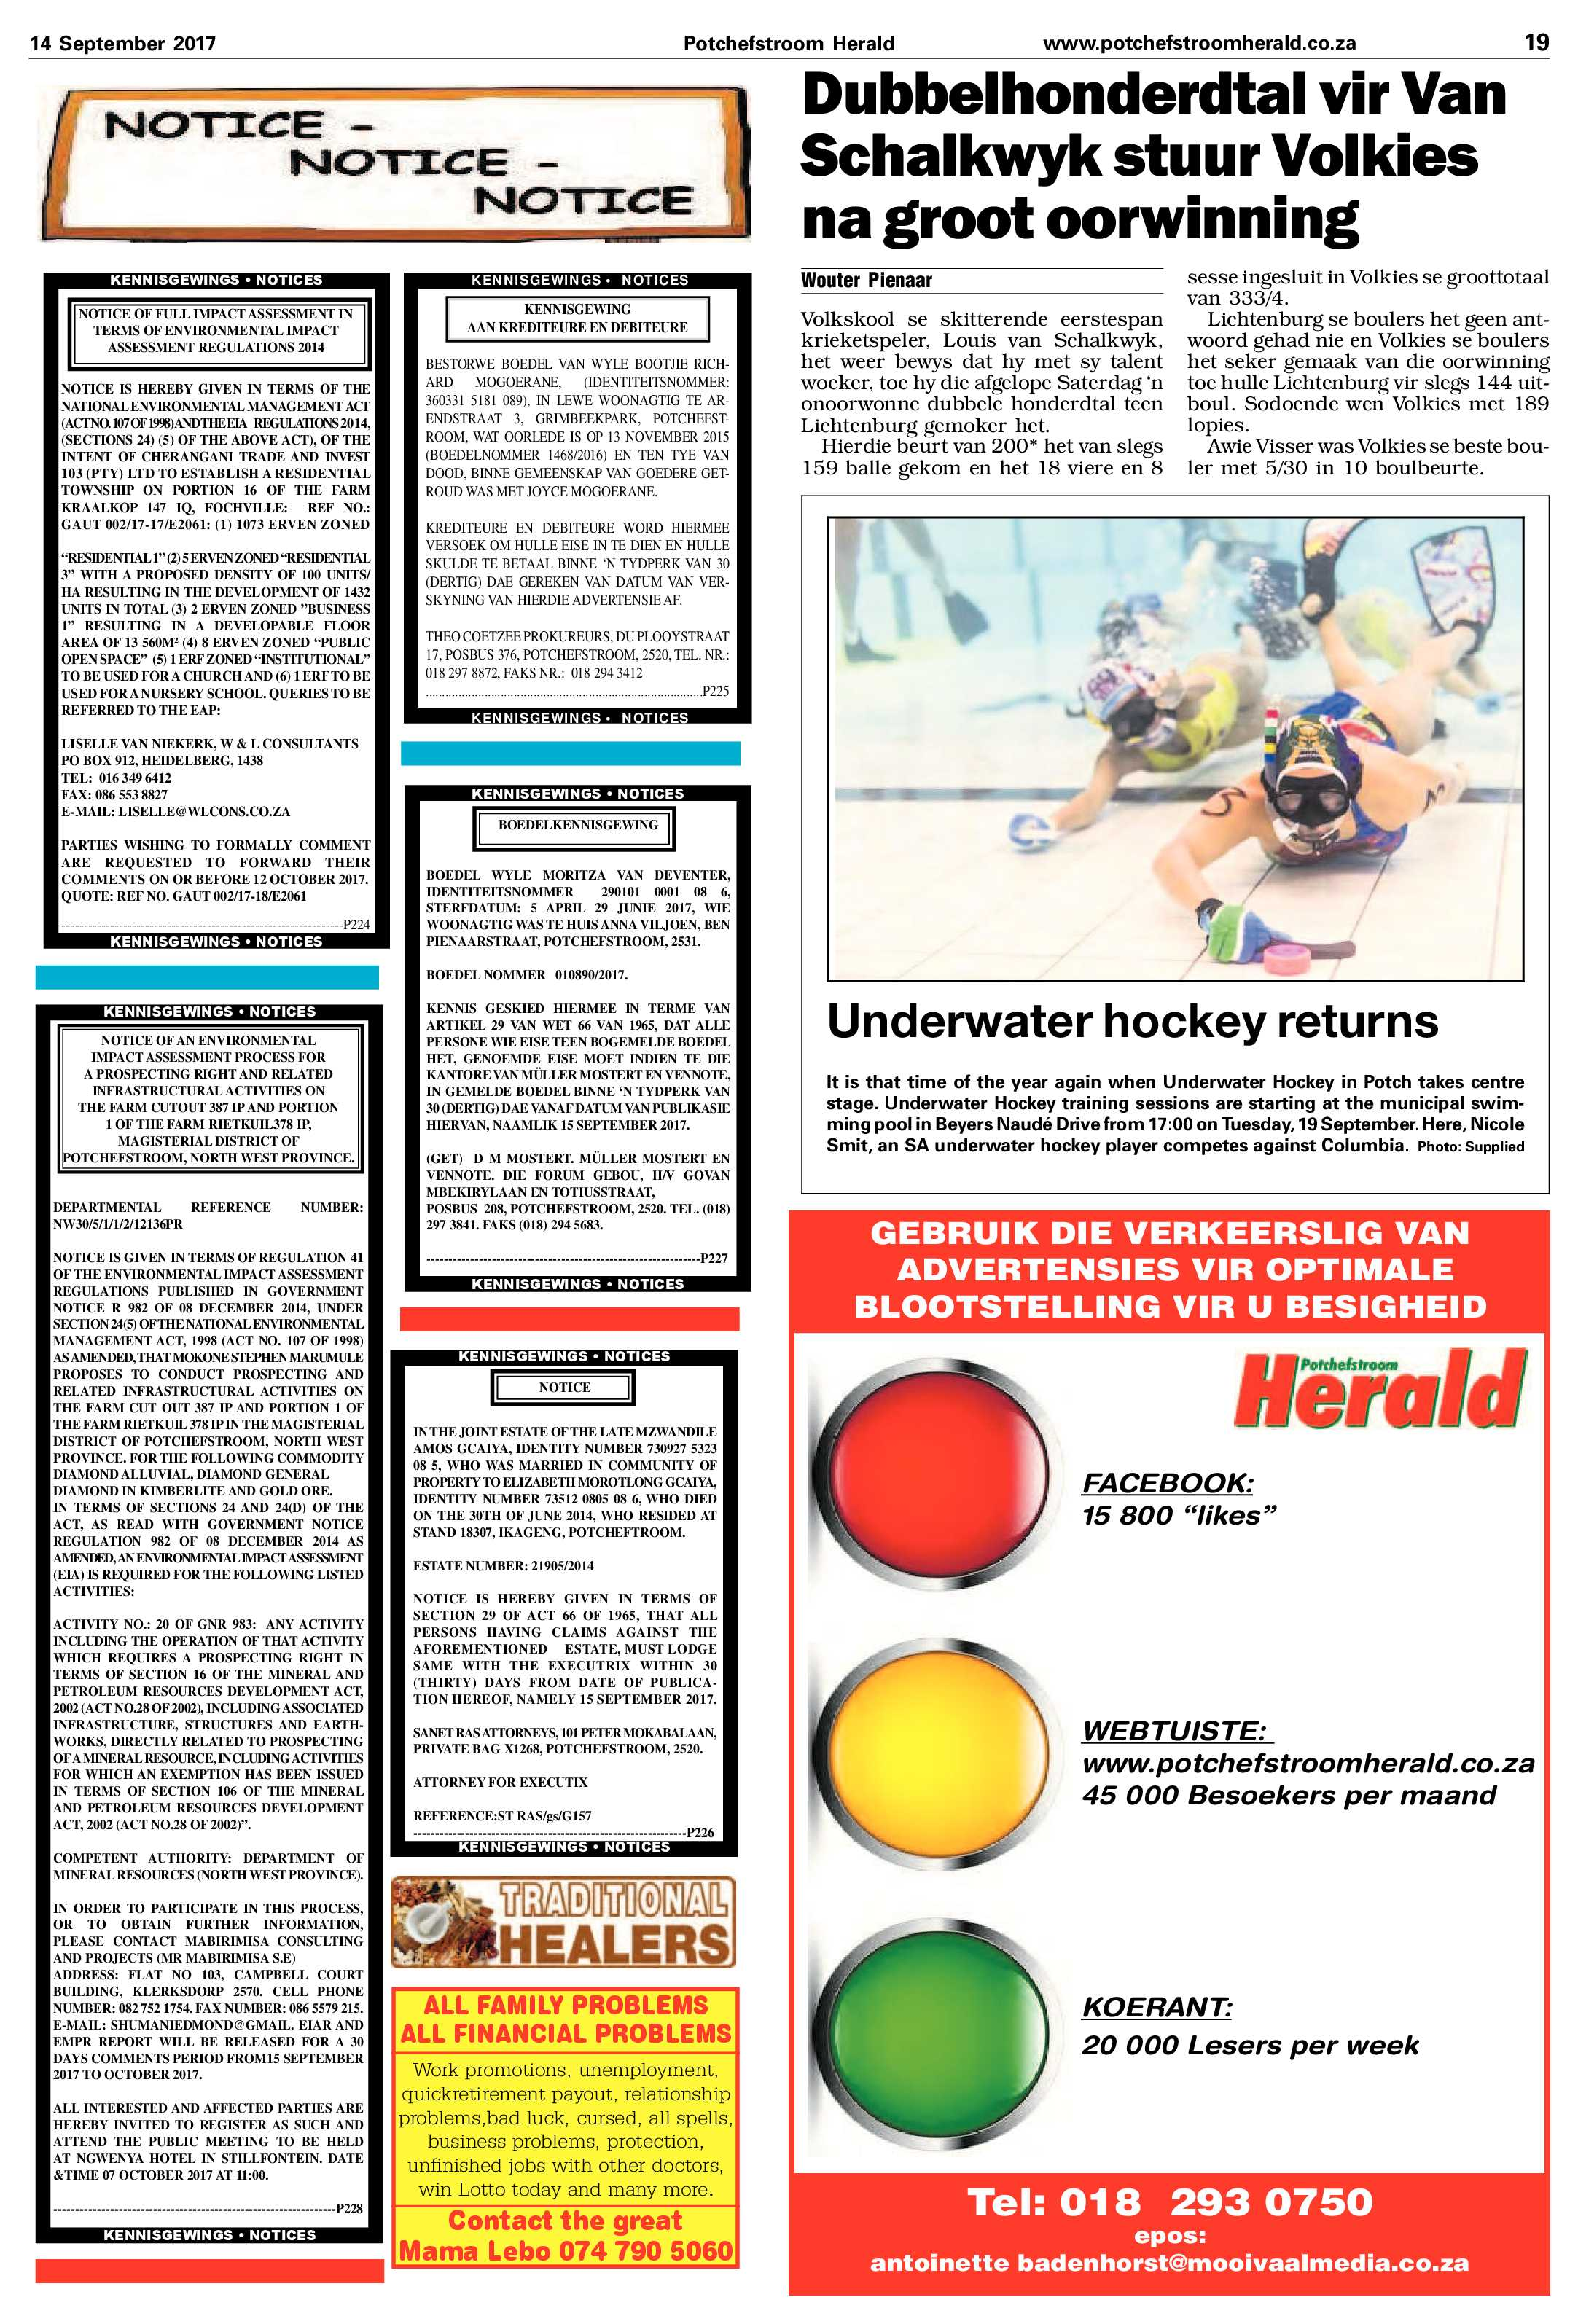 14-september-2017-epapers-page-19